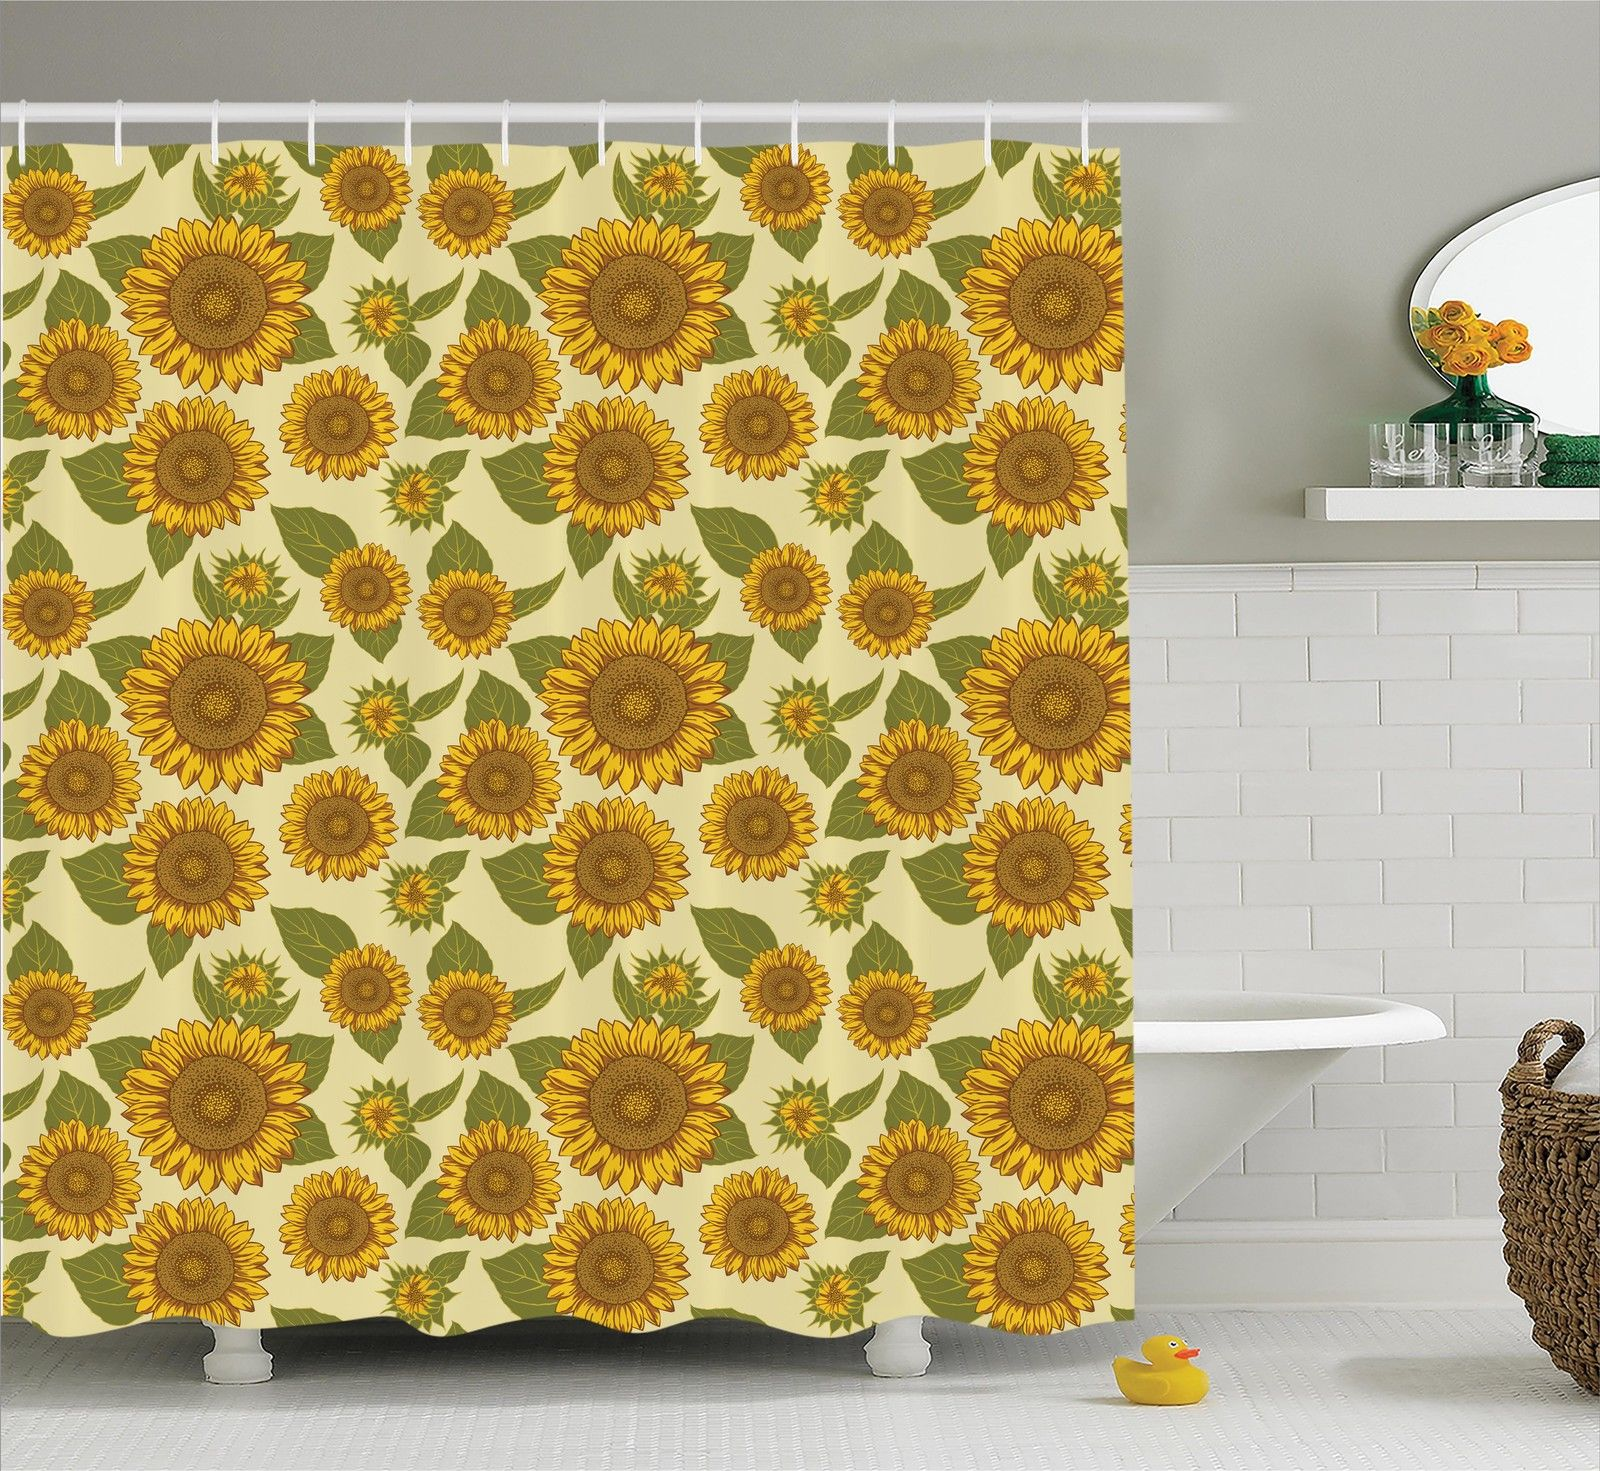 Sunflower Decor  Funky Style Sunflower In Pastel Colors Old-Fashioned Nostalgic Vintage Art Print, Bathroom Accessories, 69W X 84L Inches Extra Long, By Ambesonne